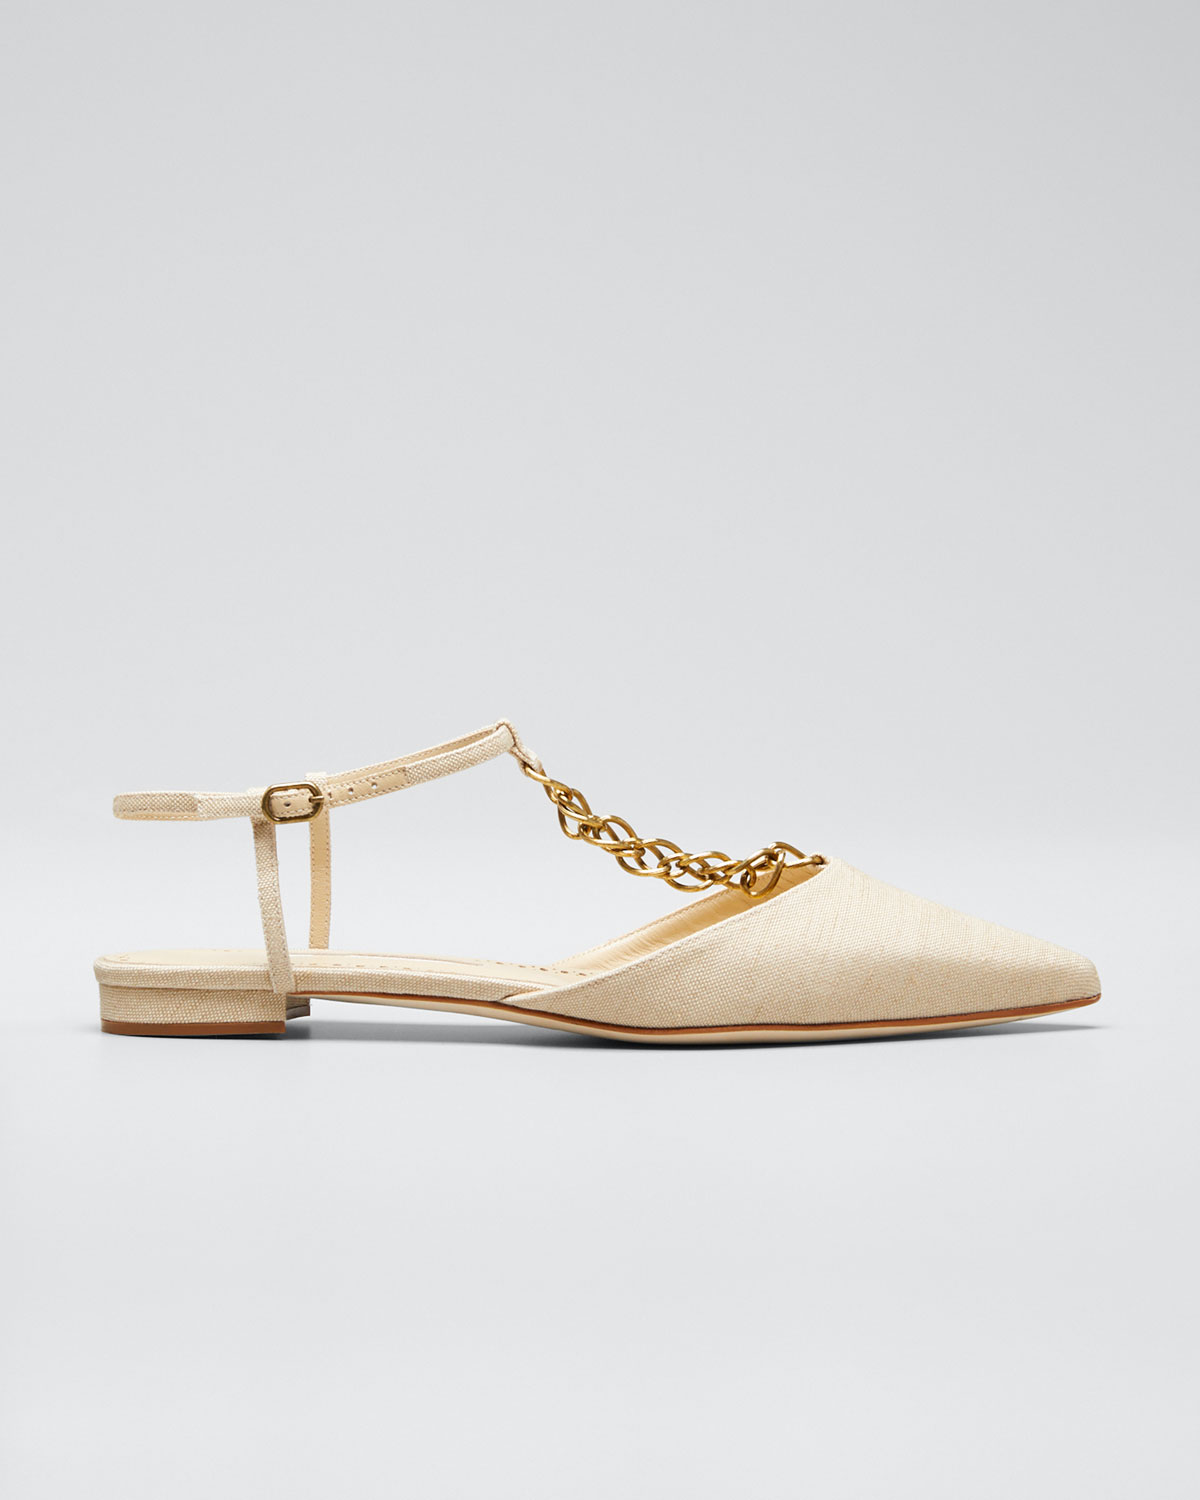 Manolo Blahnik Flats CEFALONIA CHAINED T-STRAP FLAT